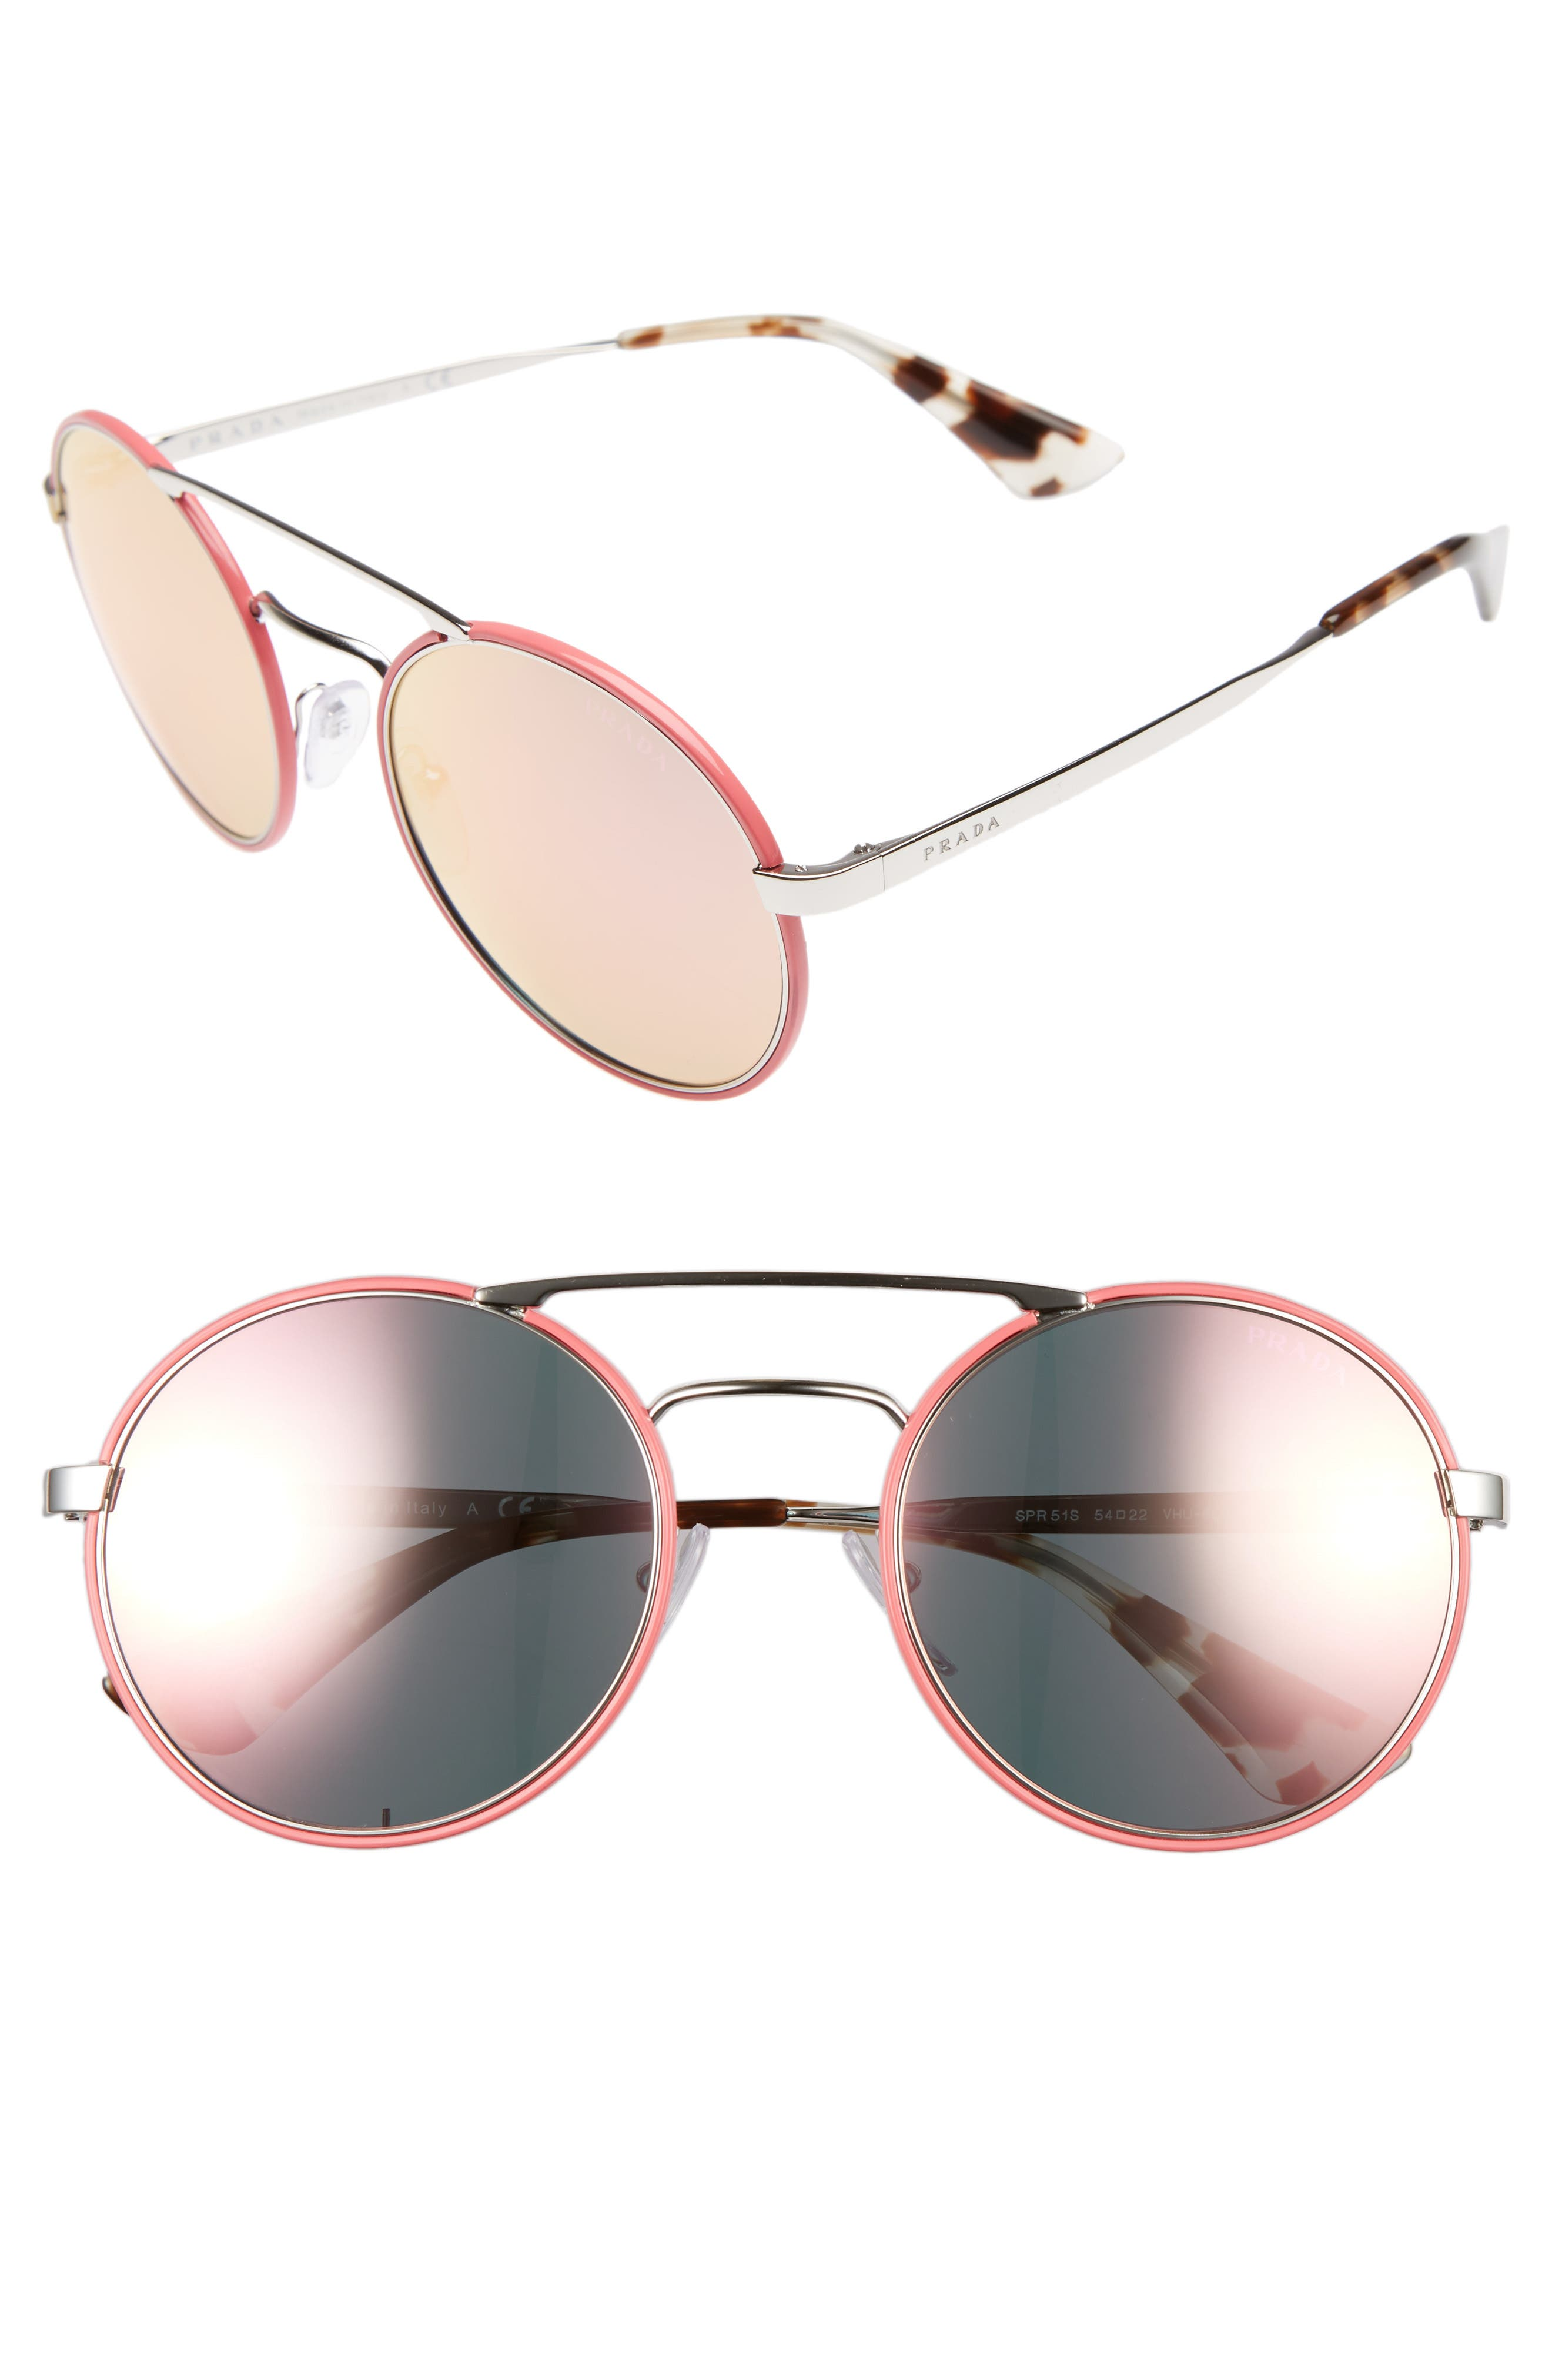 54mm Round Sunglasses,                             Main thumbnail 1, color,                             Silver/ Pink